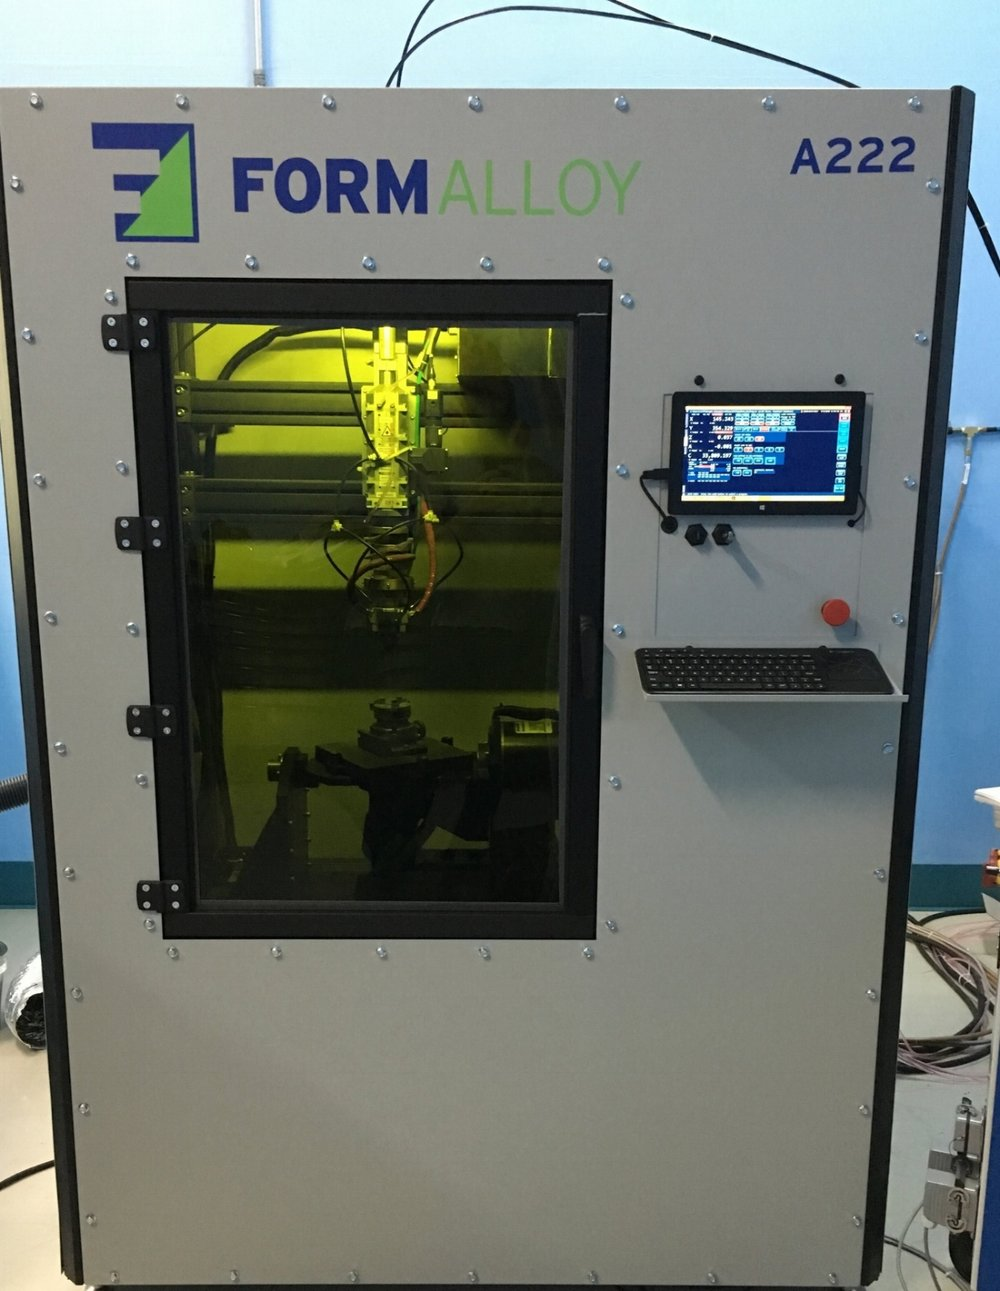 Formalloy's A222 System